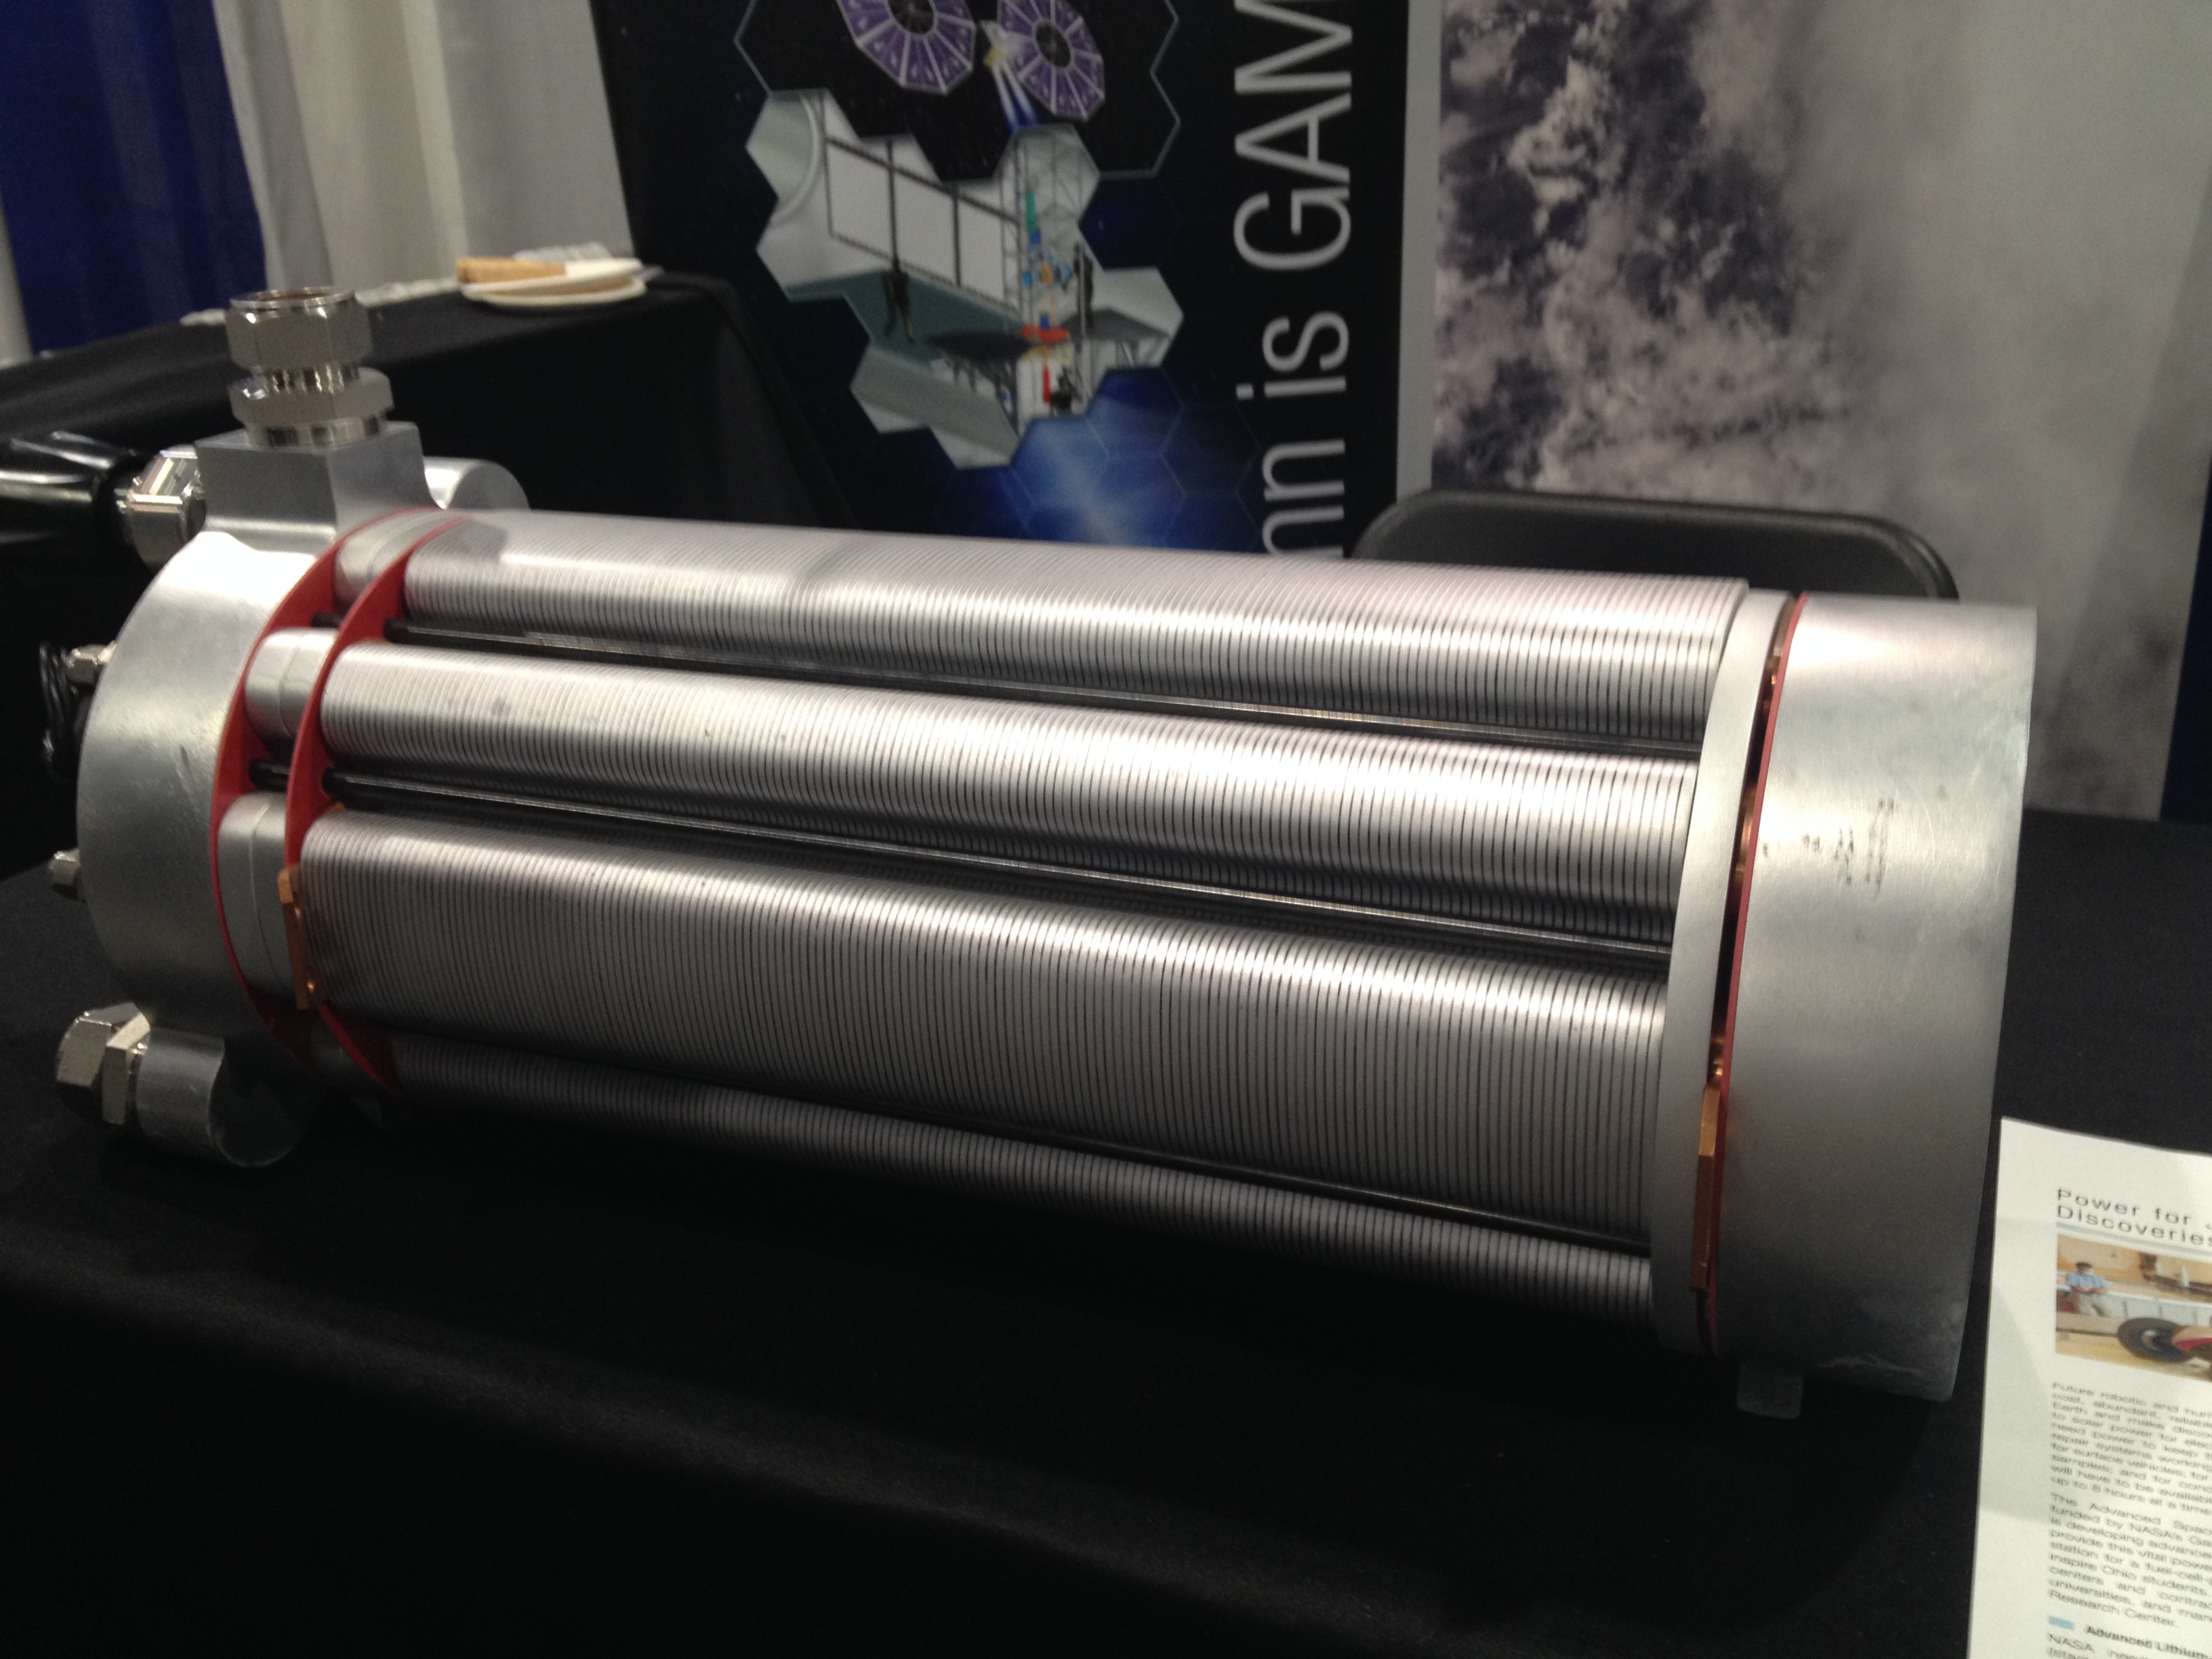 NASA developed this fuel cell for space applications.